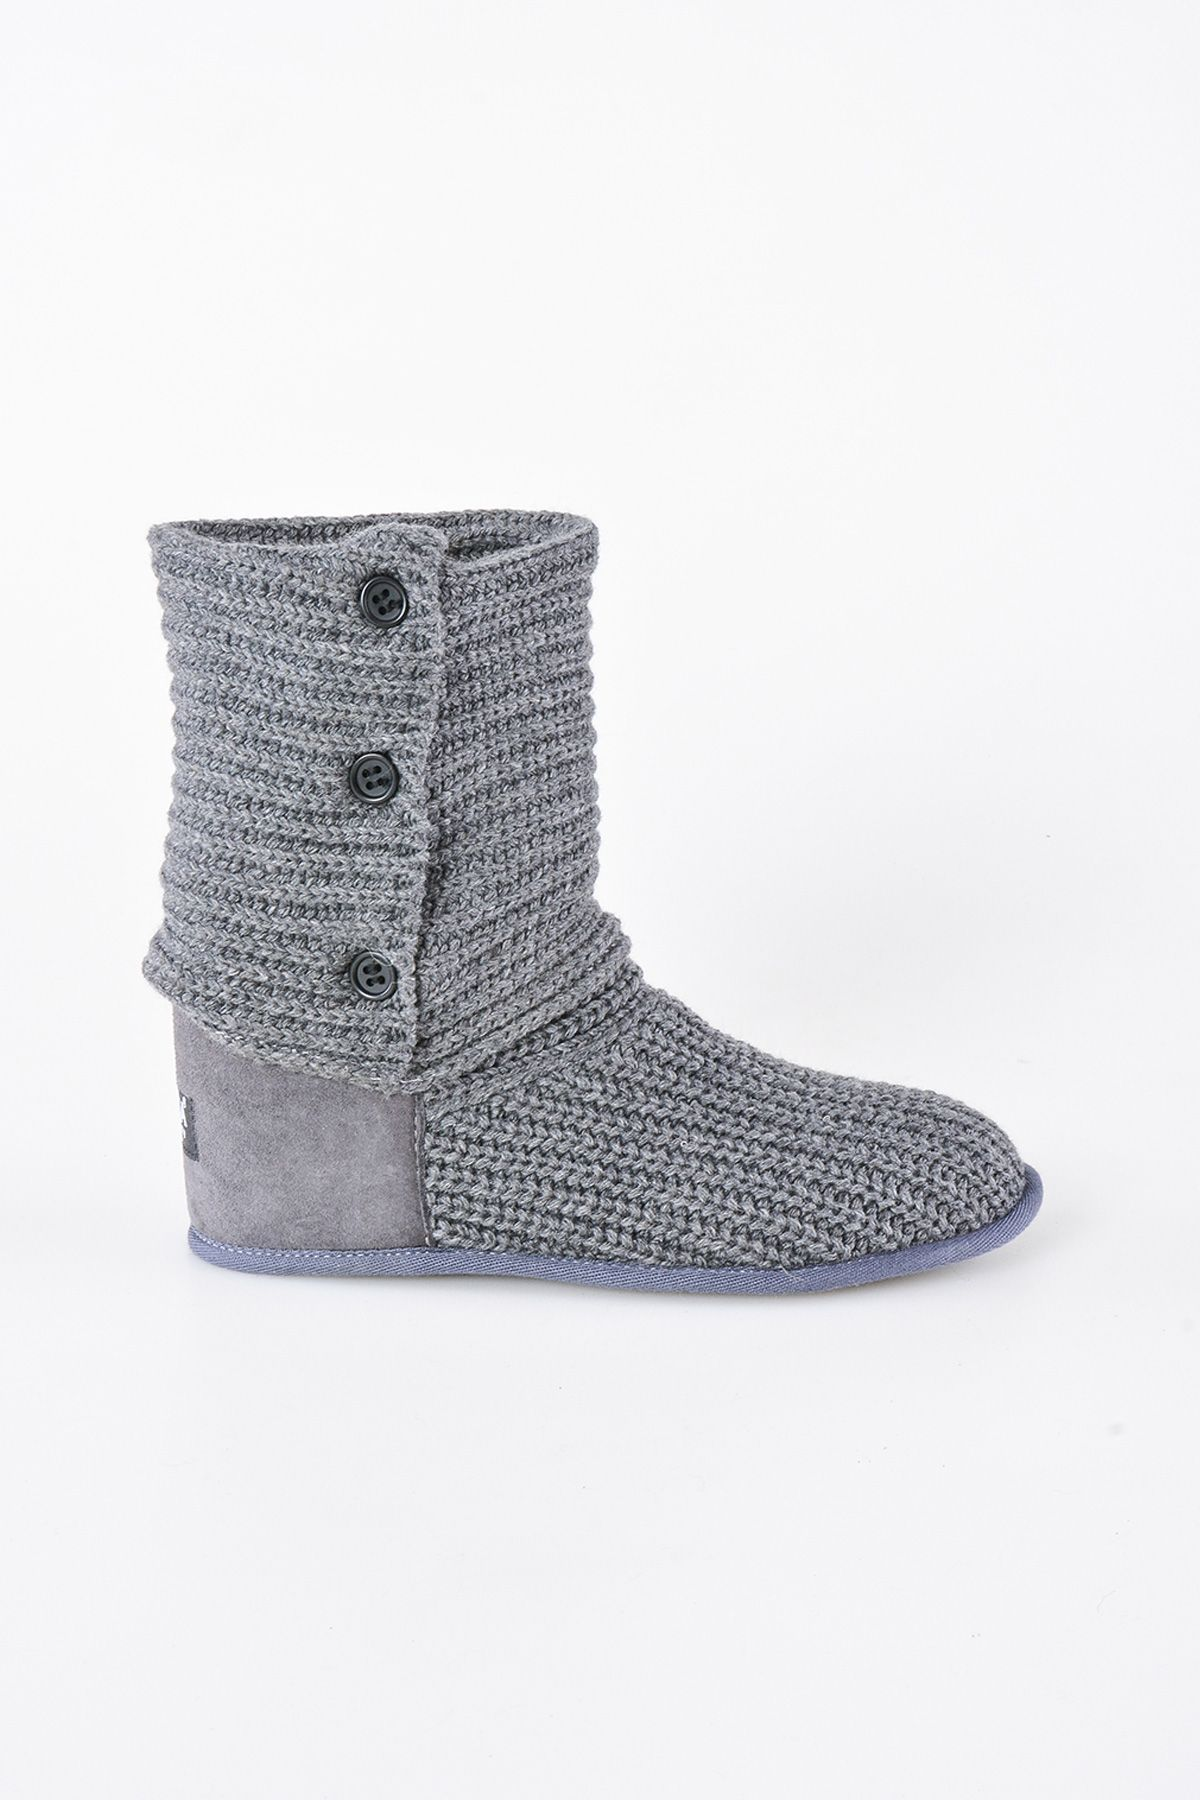 Pegia Women's Home Shoes From Genuine Suede With Braided Pattern 191098 Gray